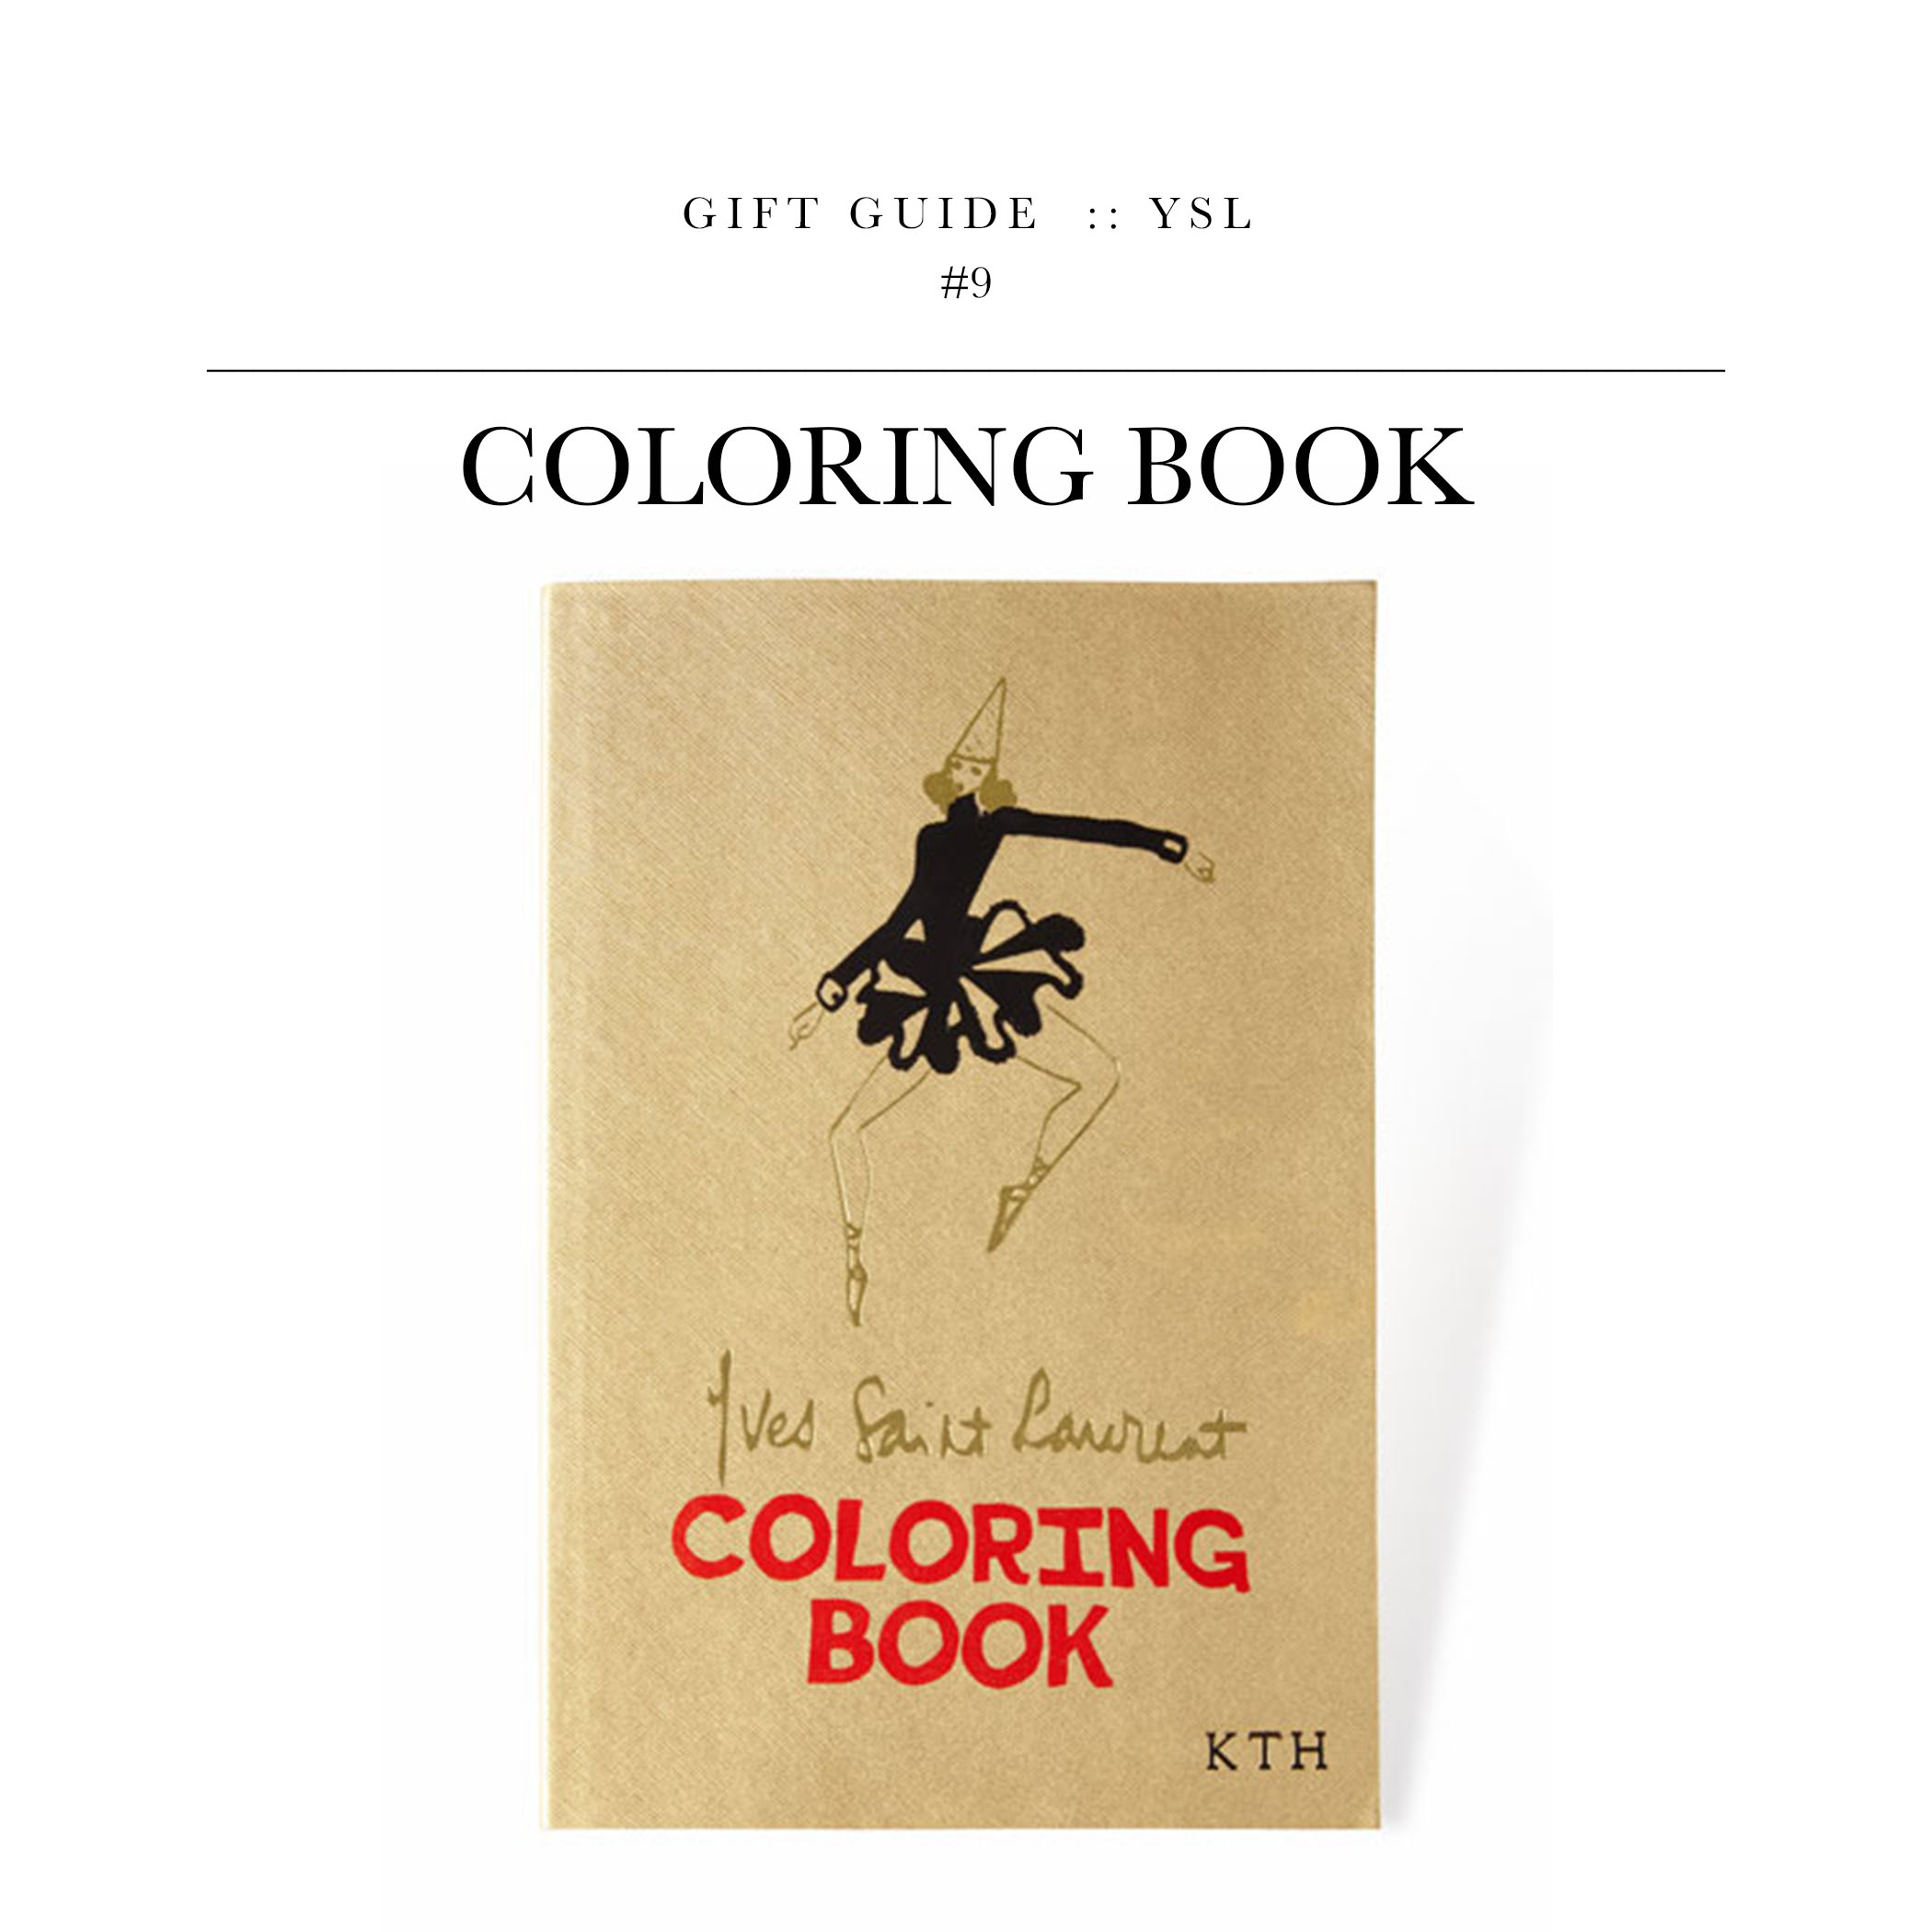 Coloring Book  via YSL // They say coloring is one of the best ways to reduce stress. Let her fill out a couple sketches and then get them framed for her.